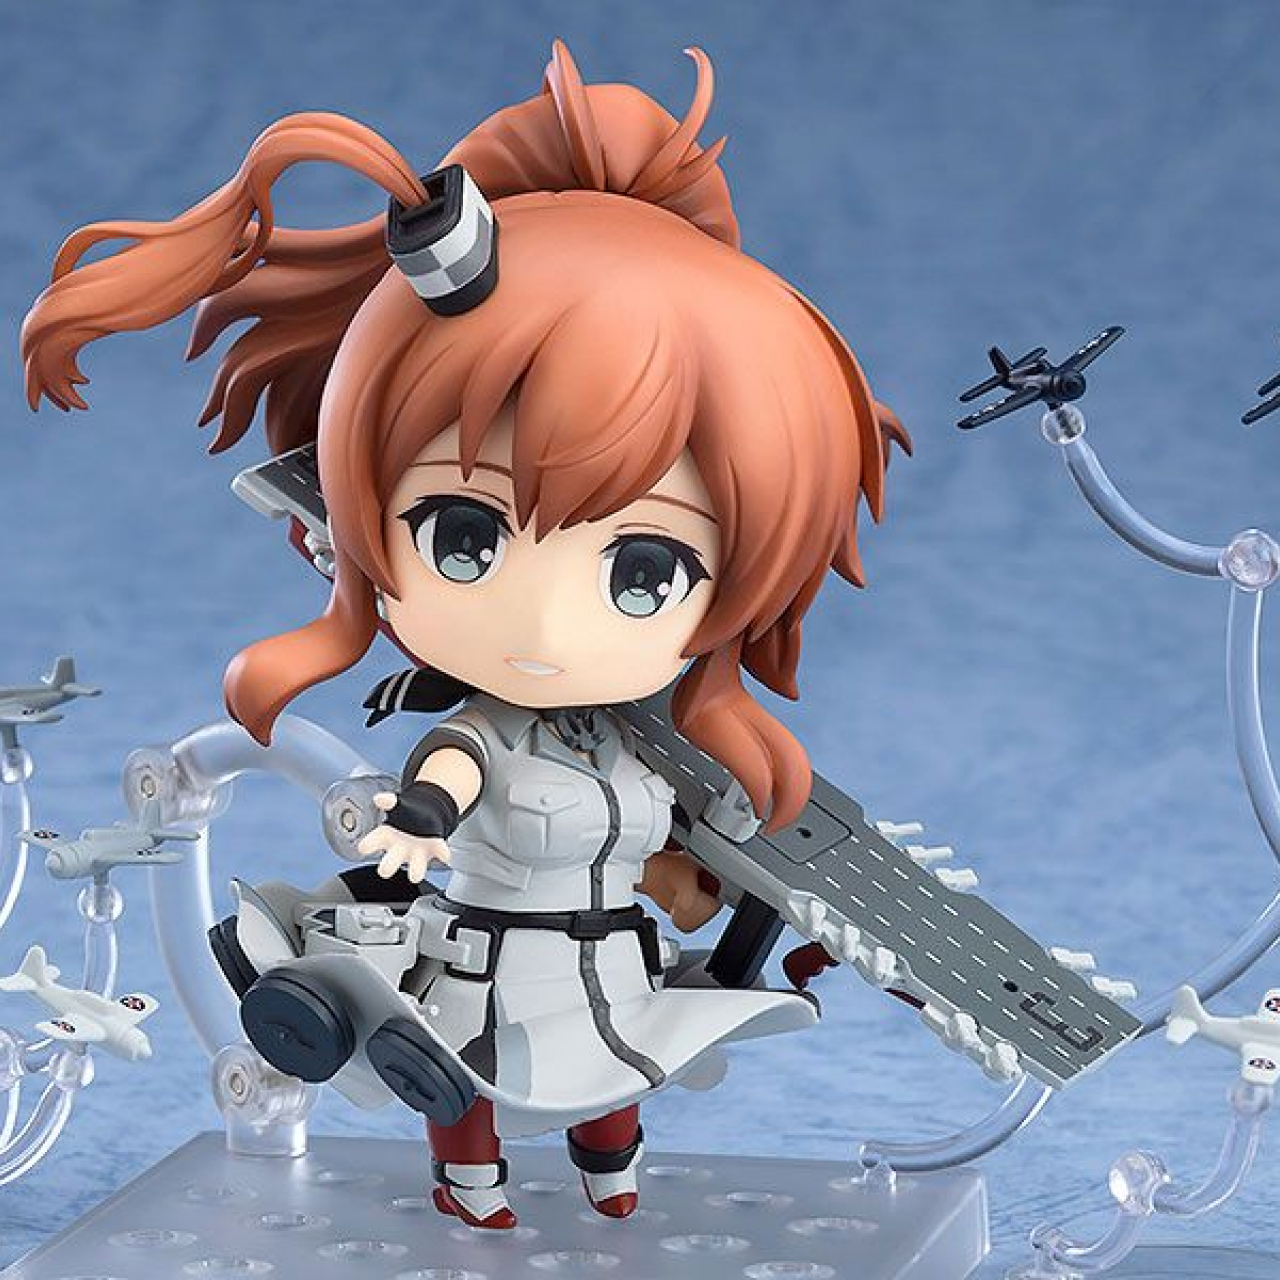 Kantai Collection Nendoroid Action Figure Saratoga Mk. II 10 cm